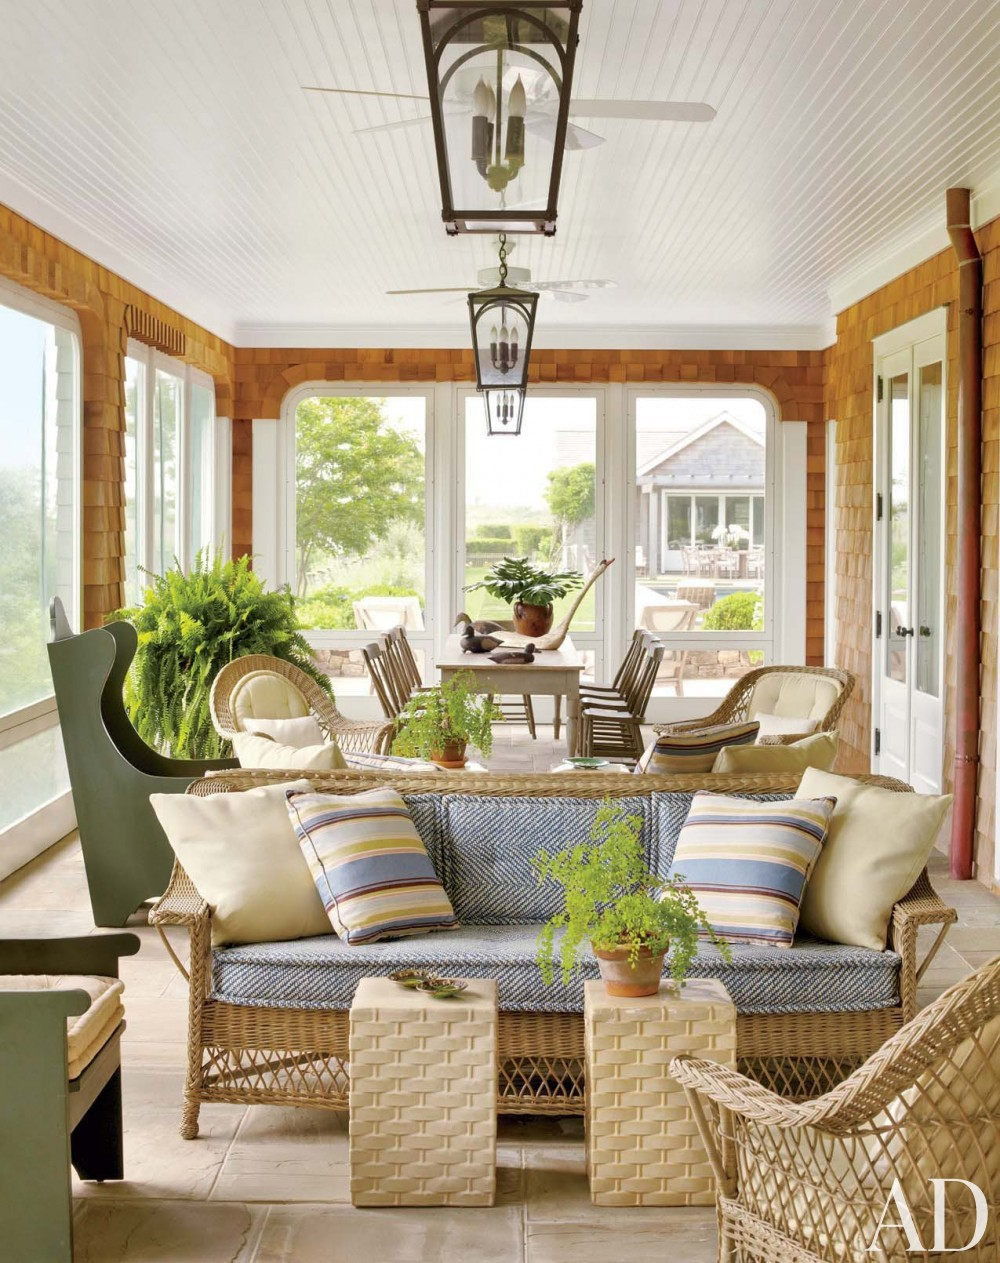 Contemporary Porch by Carrier and Company Interiors and John David Rose in Southampton, New York